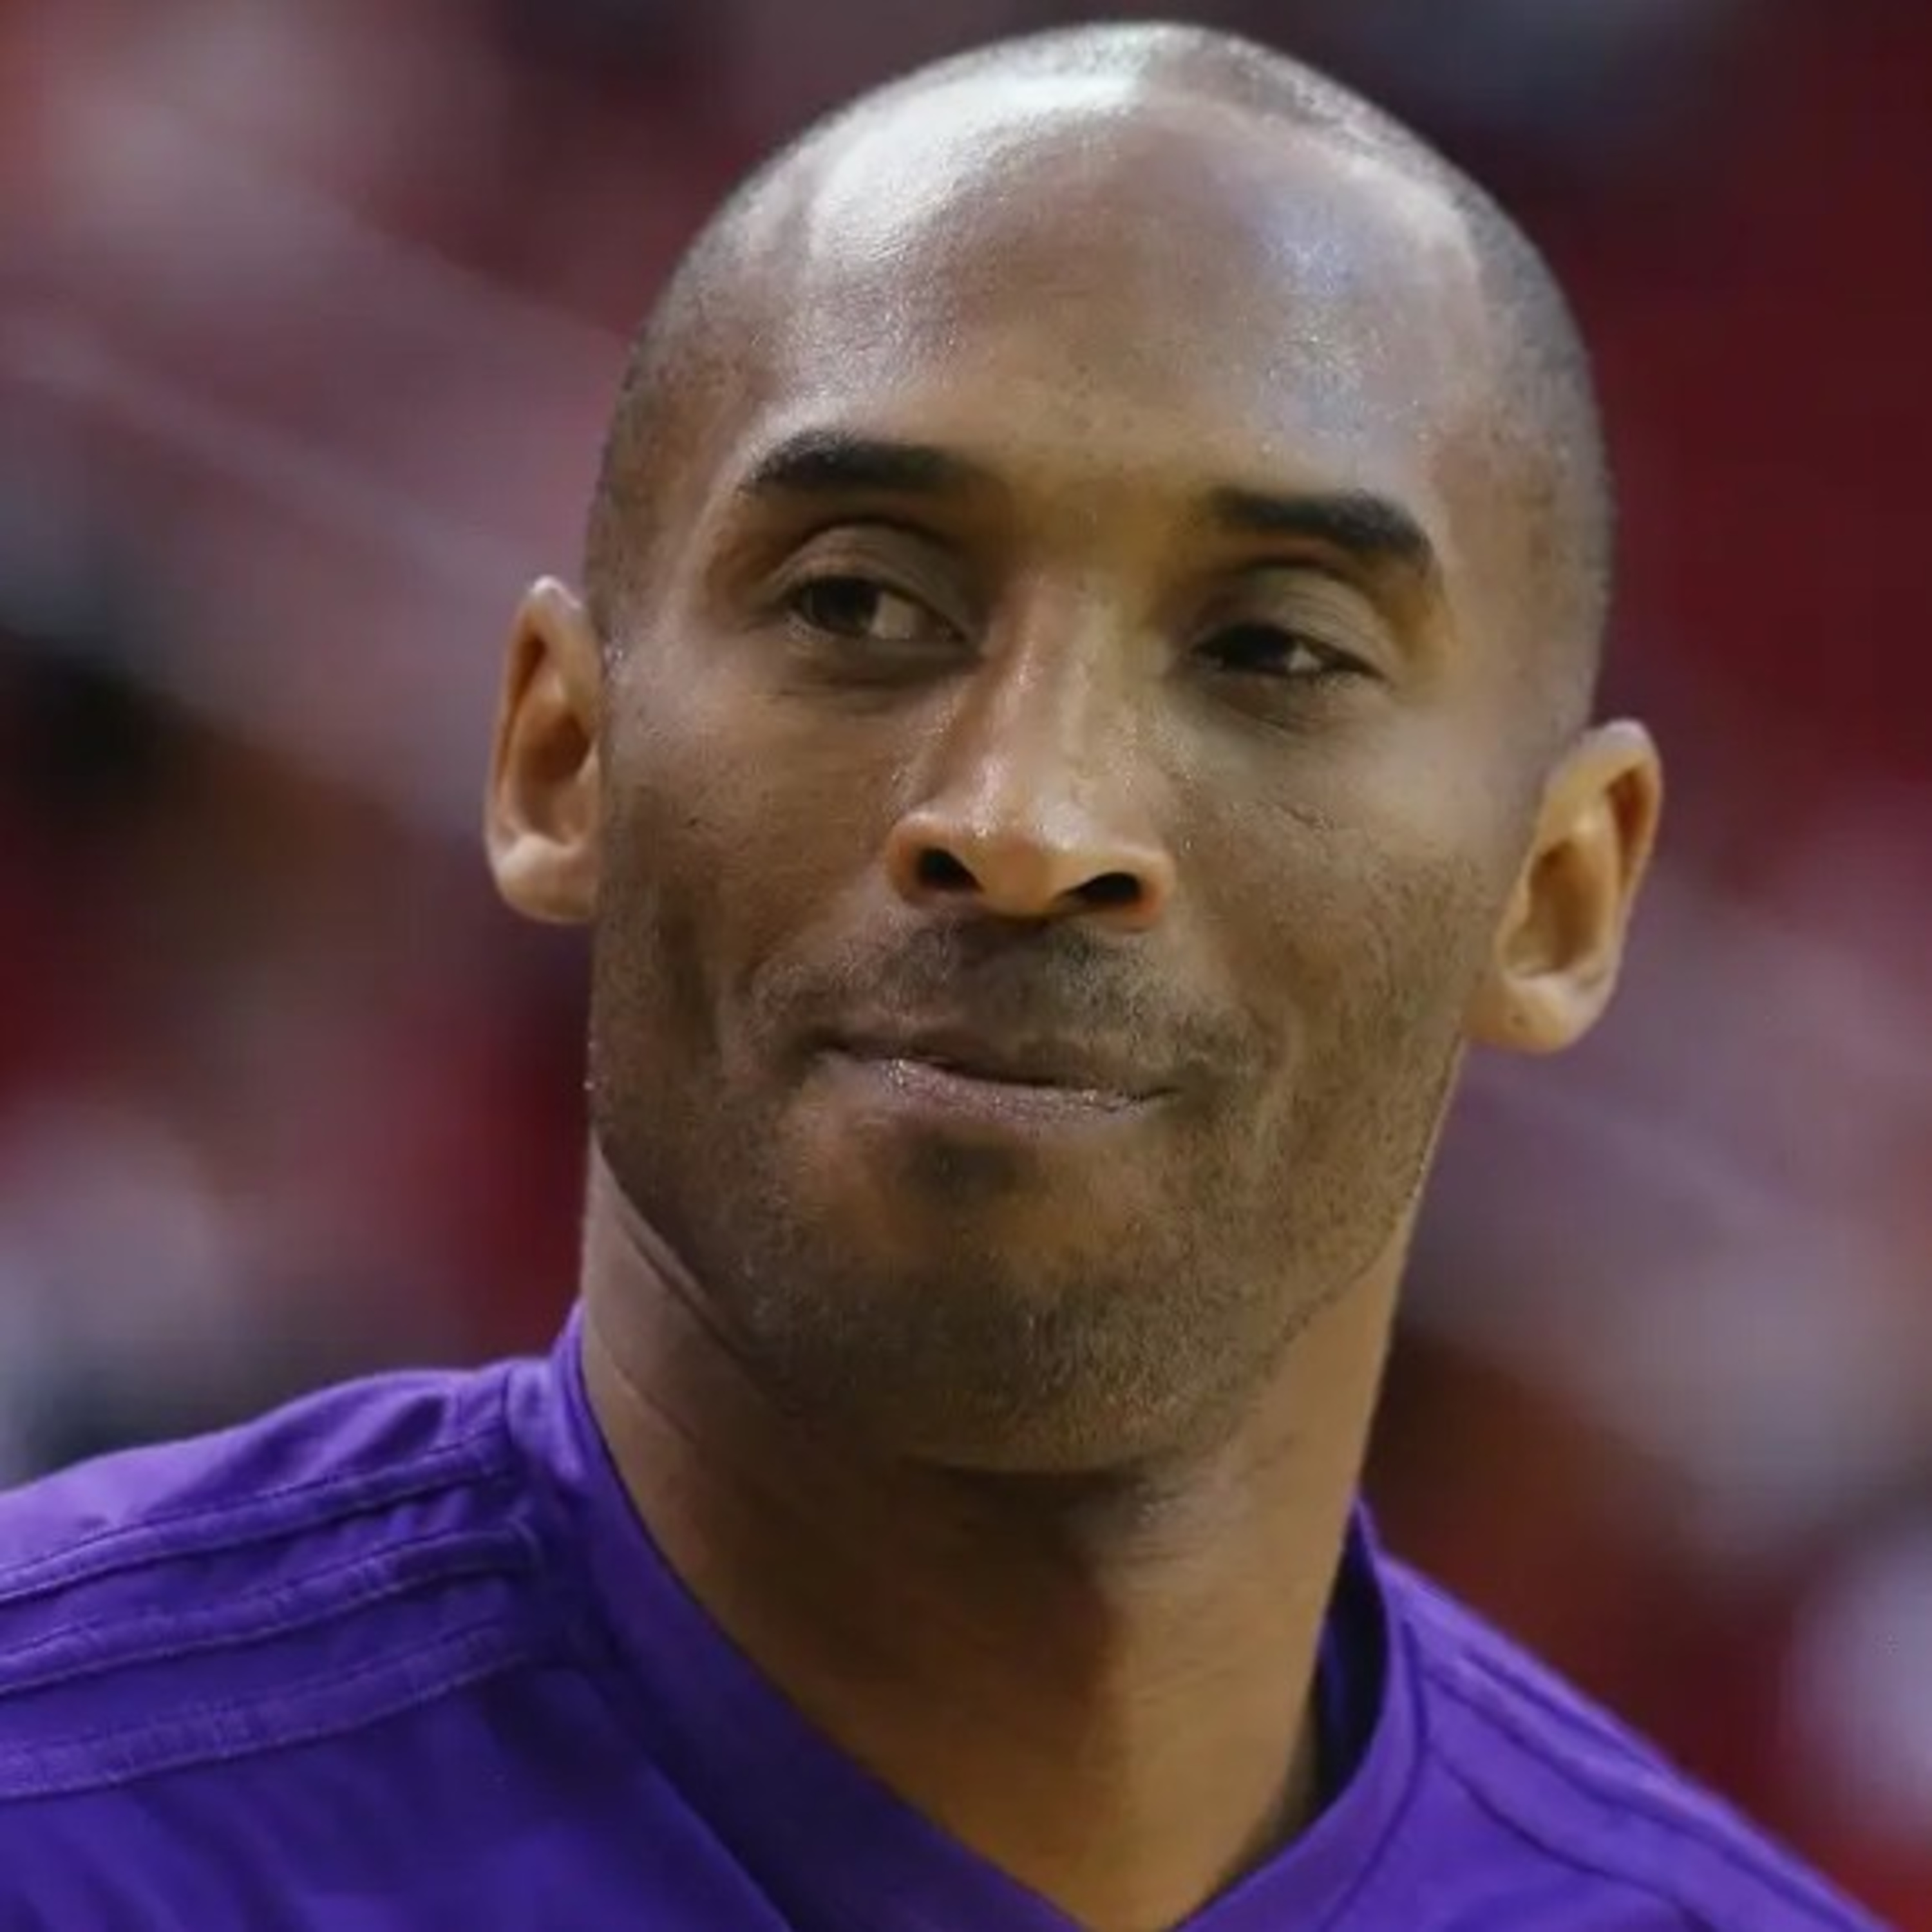 KOBE BRYANT JUST DIED IN A HELICOPTER CRASH!!!!?